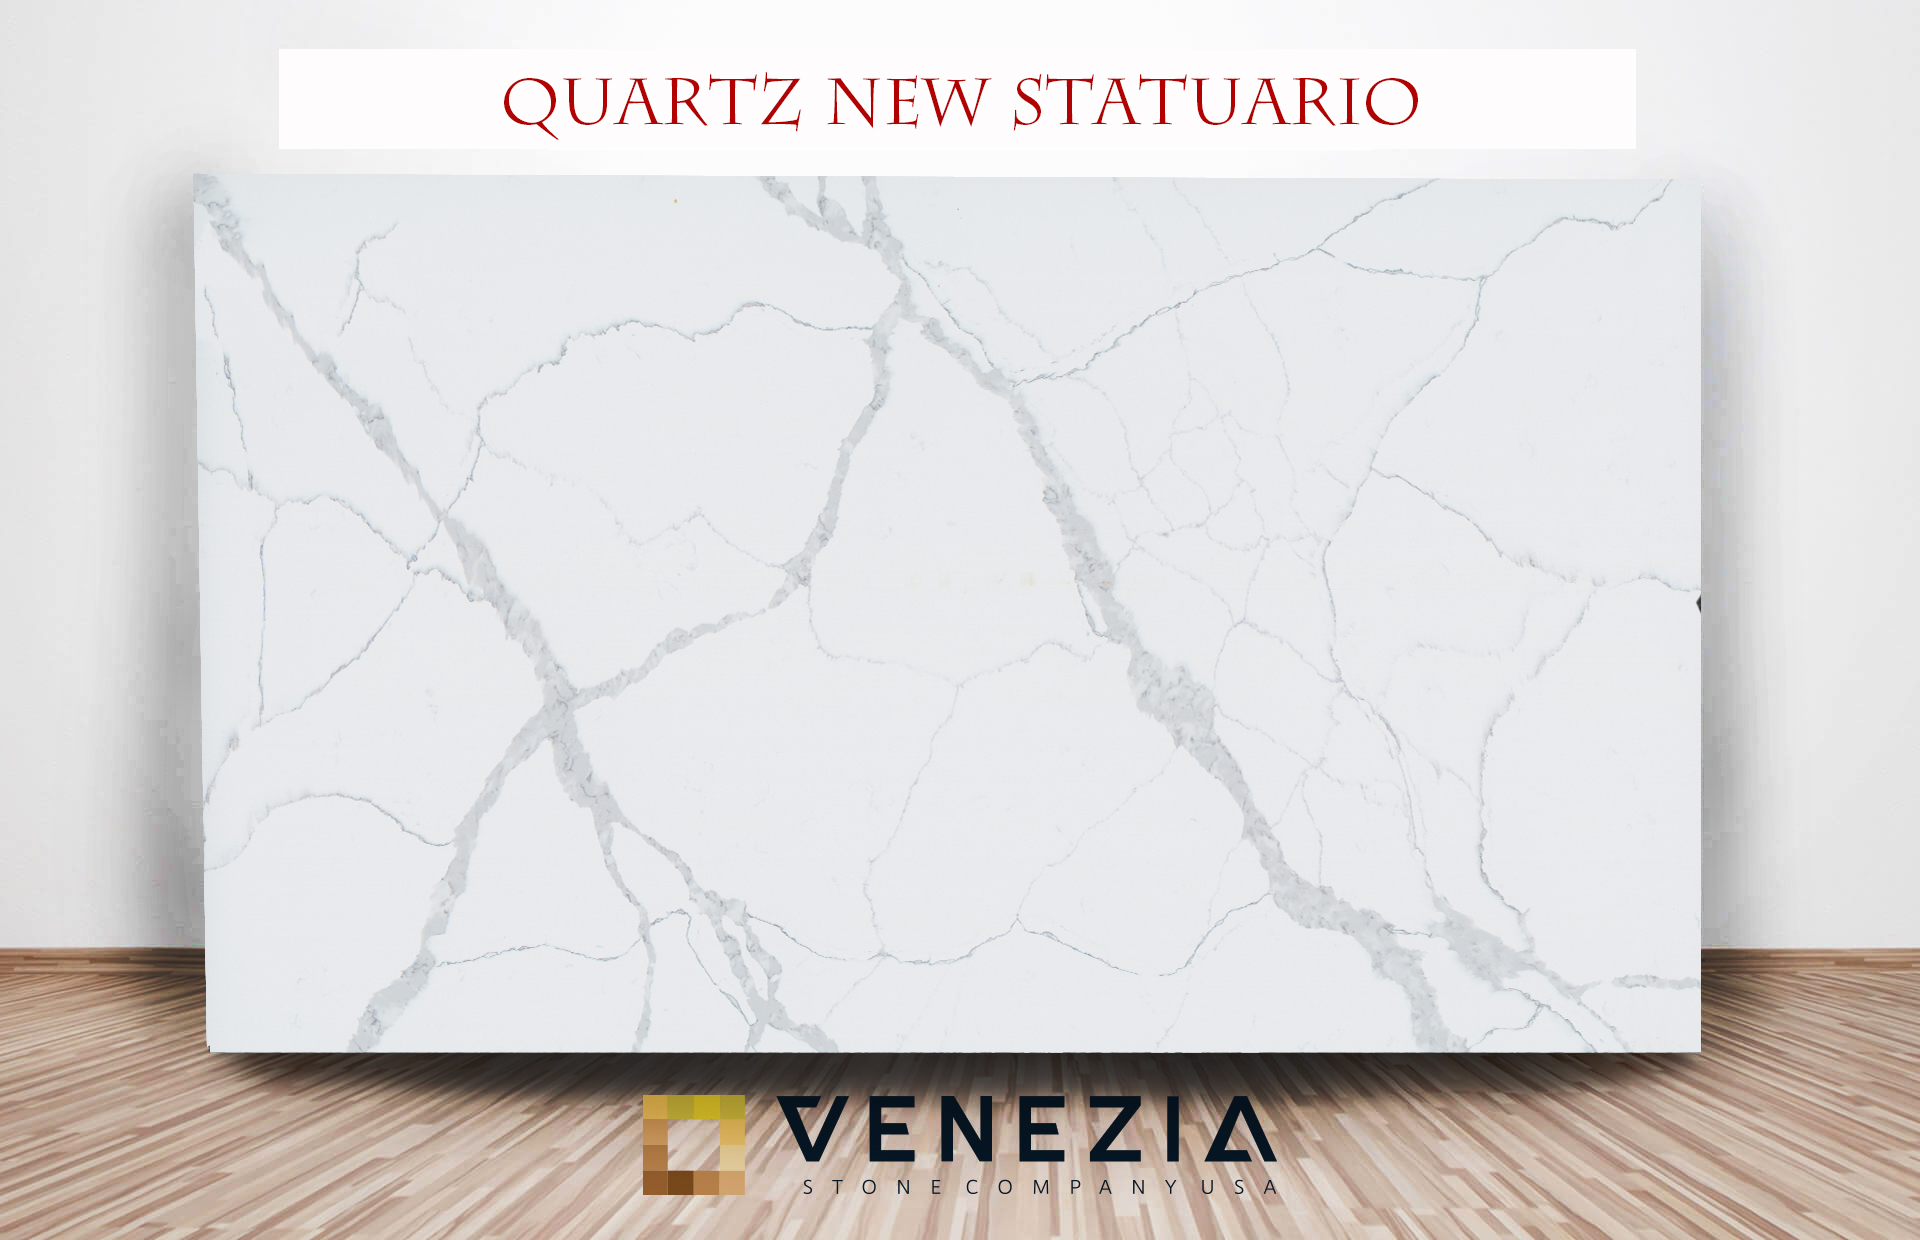 New Statuario Quartz